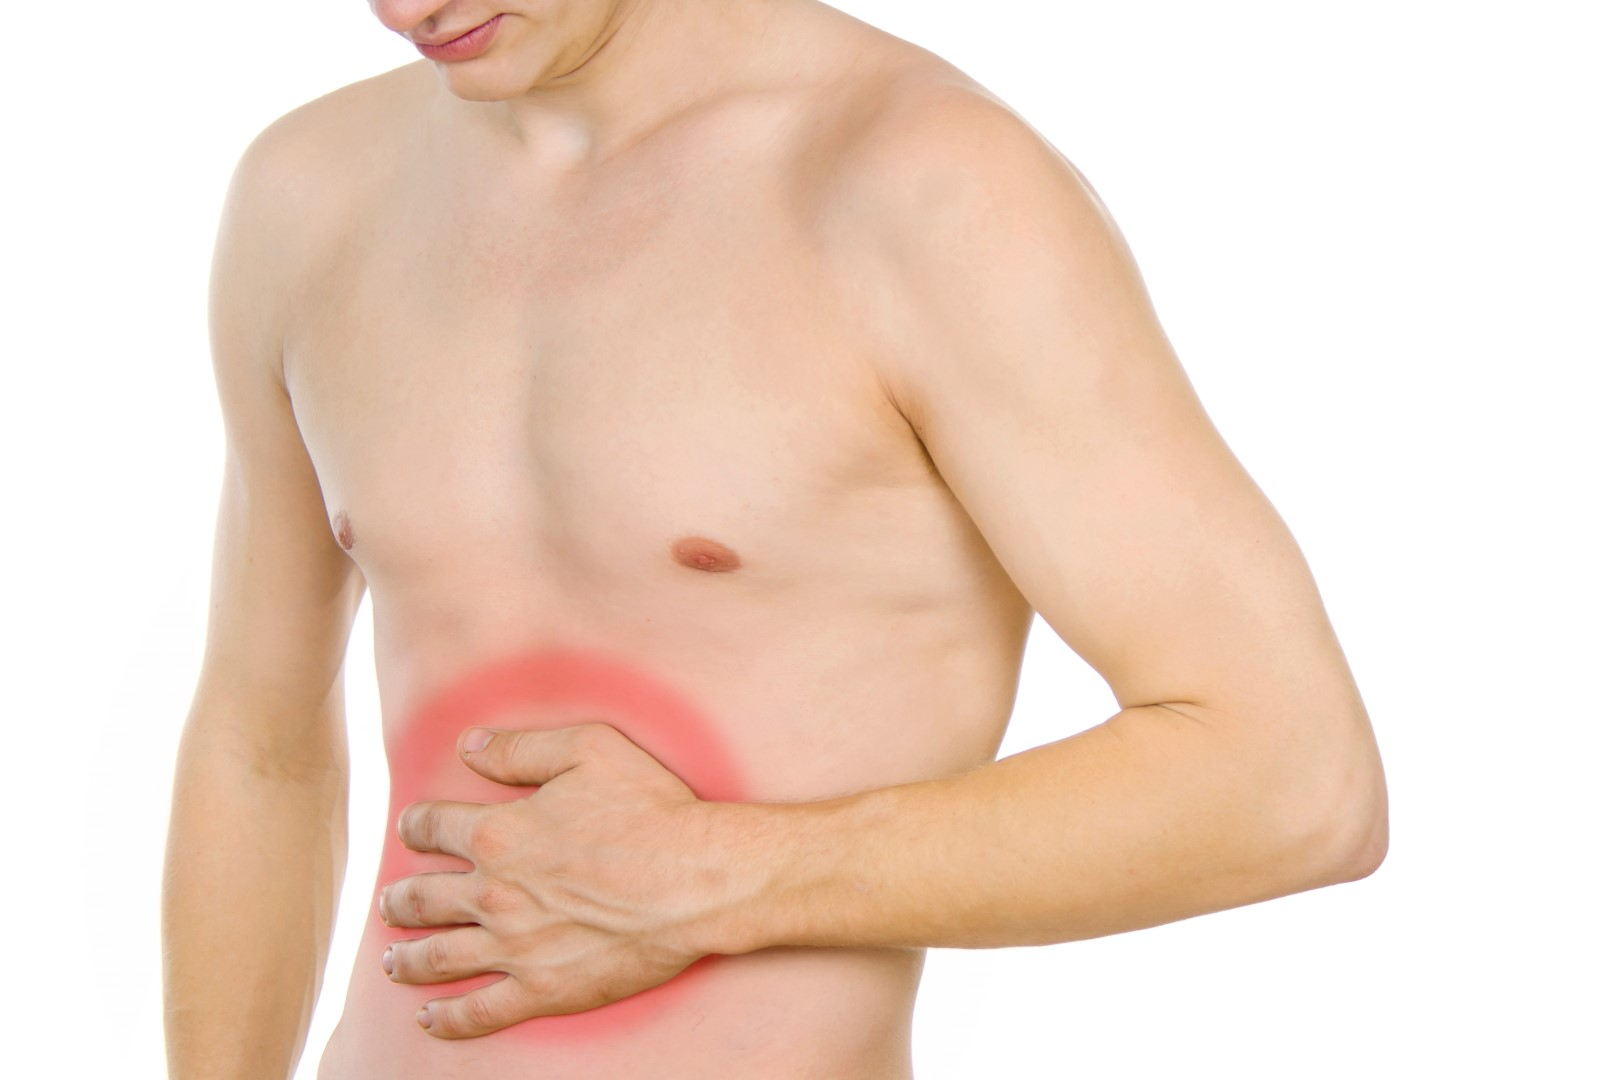 male torso, pain in the abdomen due to digestive disorders